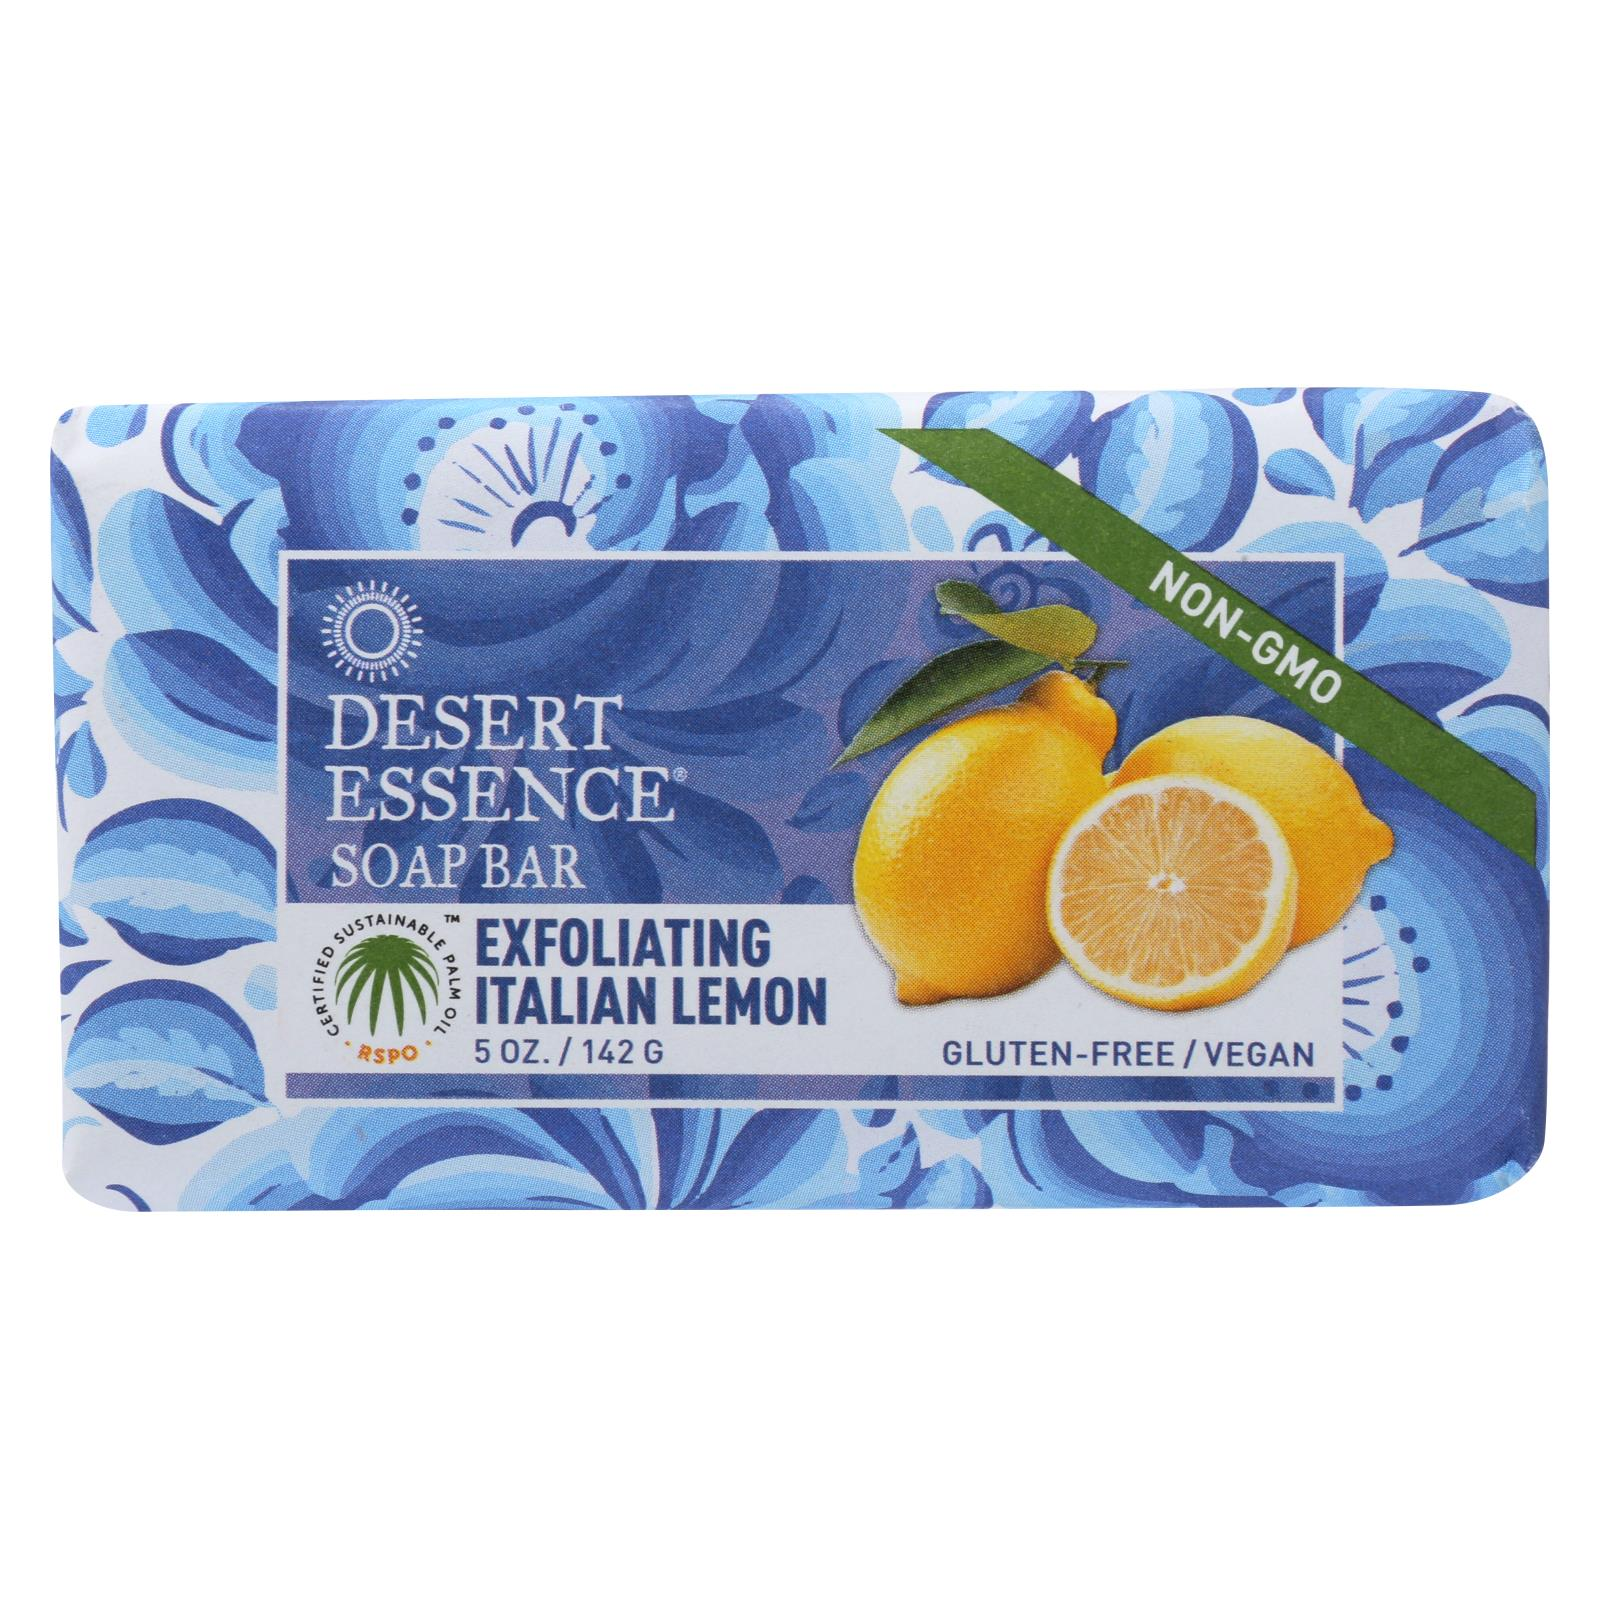 Buy Desert Essence Bar Soap - Exfoliating Italian Lemon - 5 oz - Bar Soap from Veroeco.com